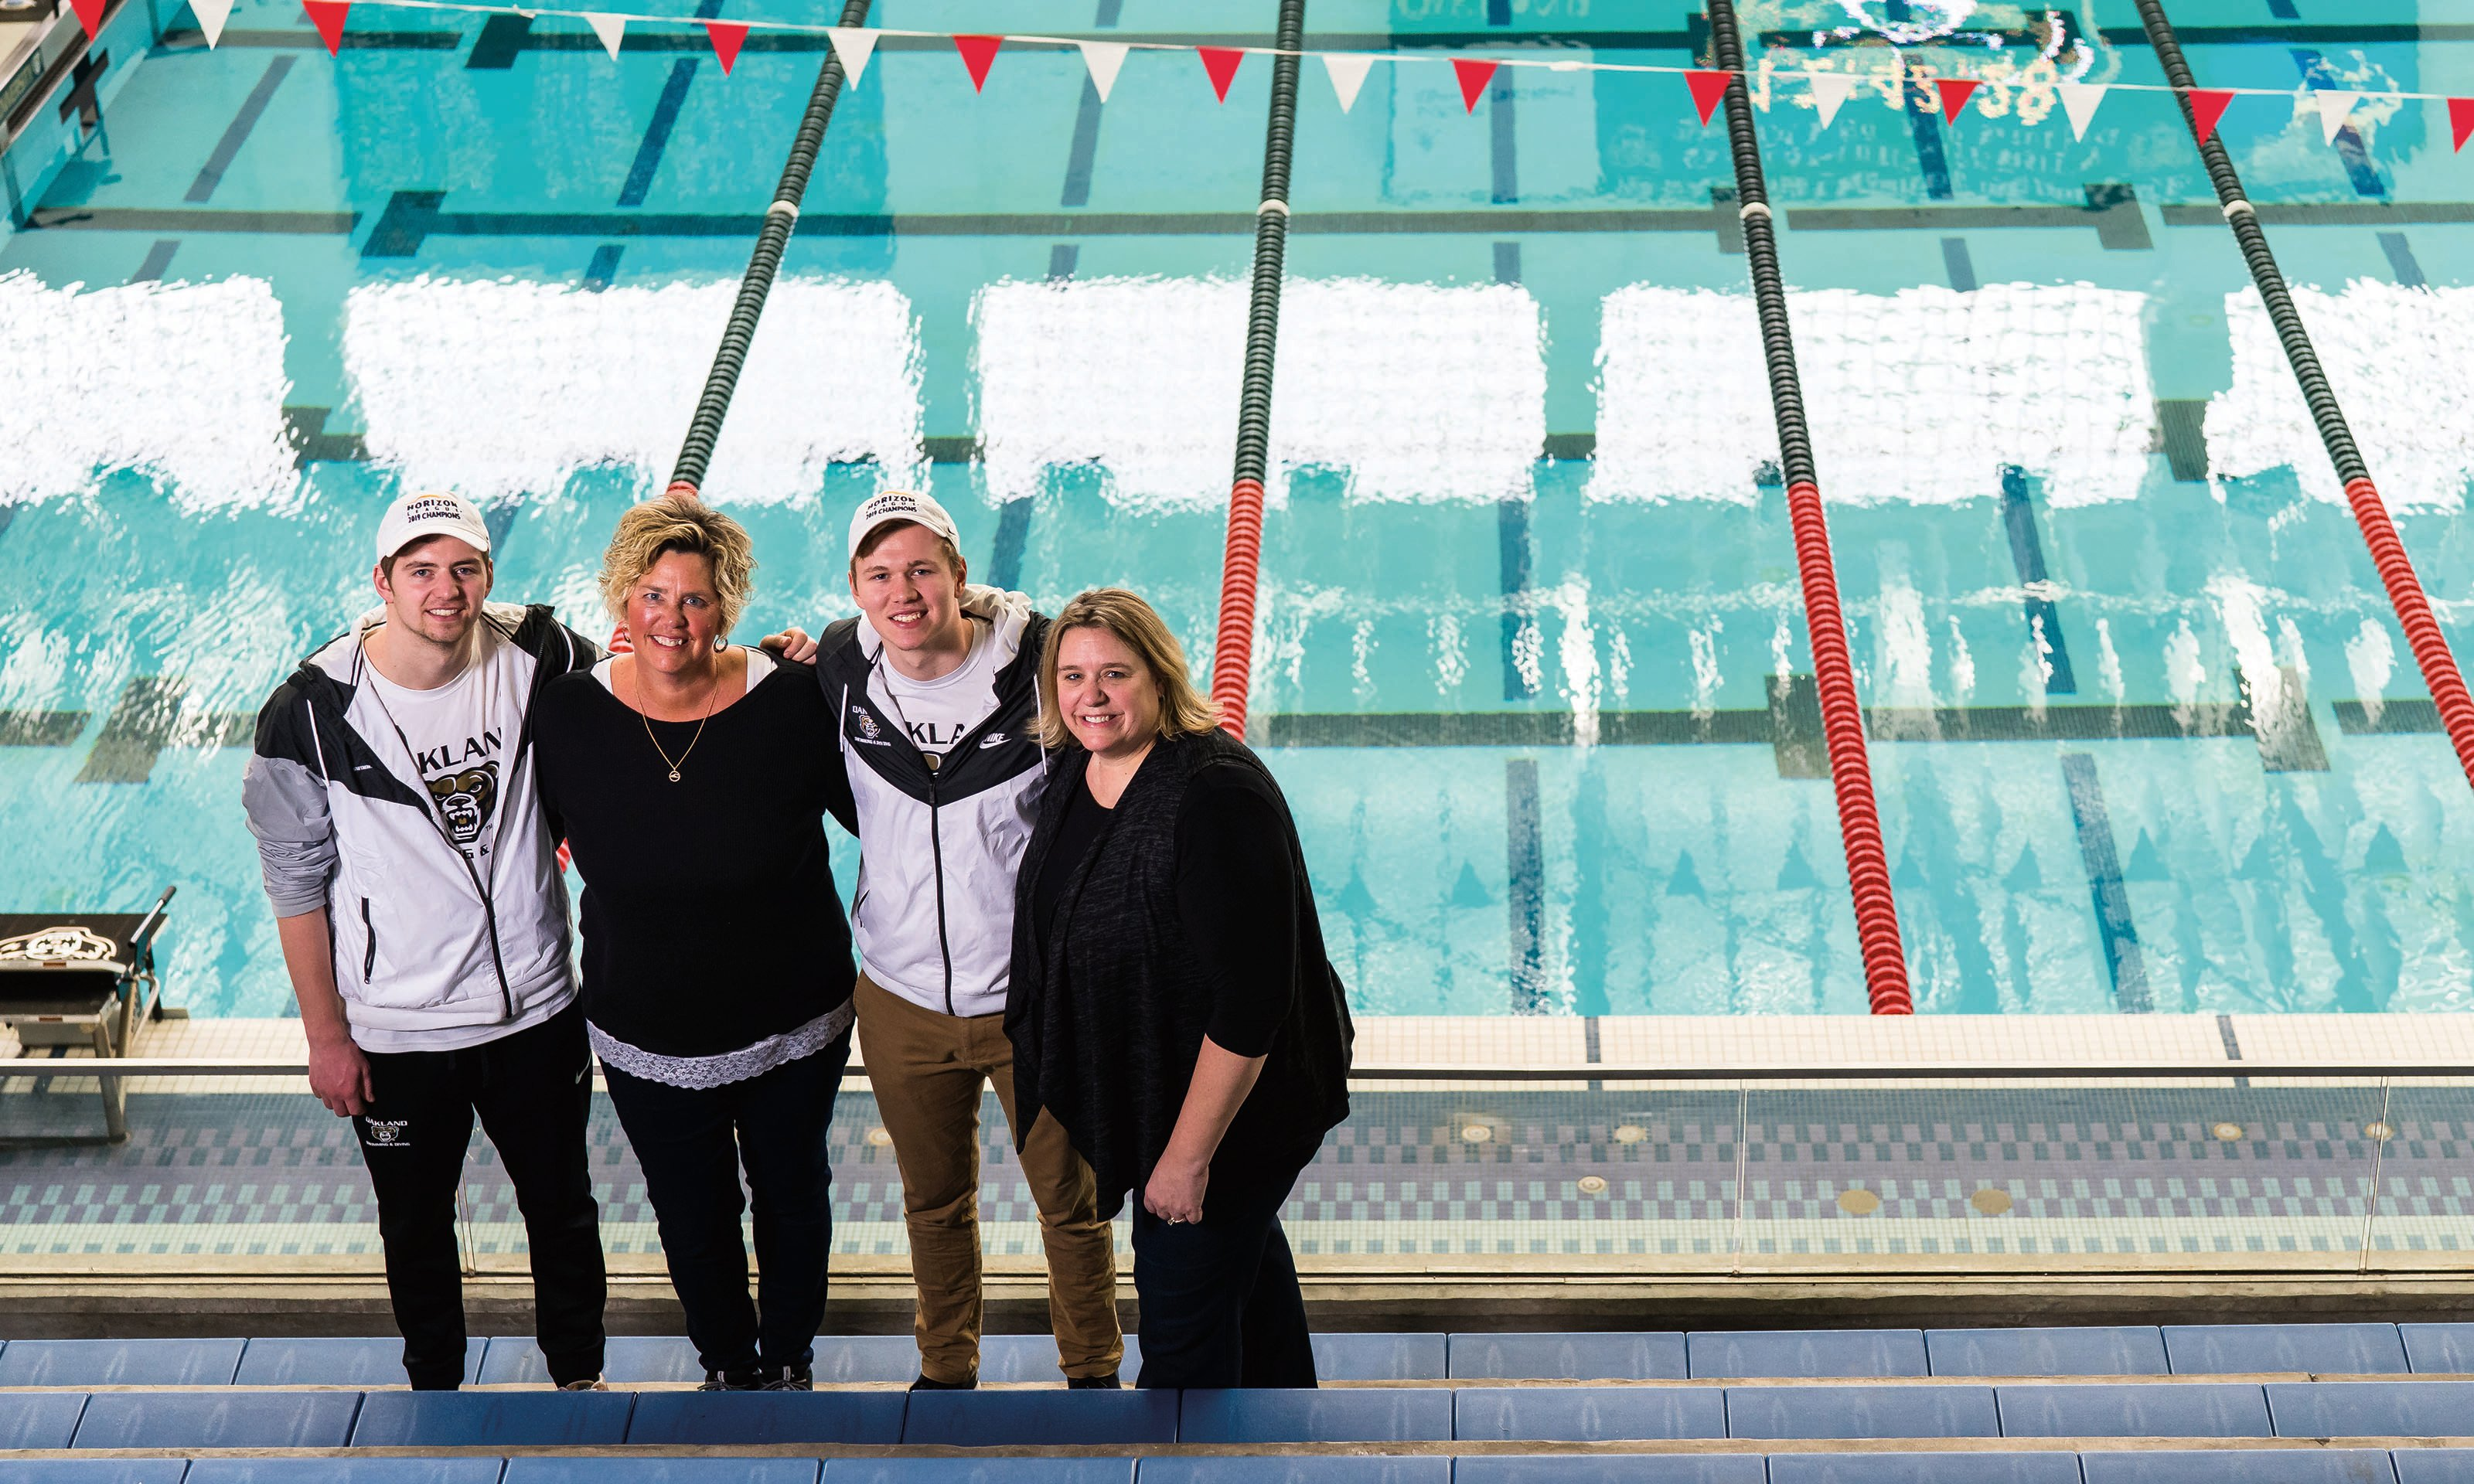 family of two sons, mom and aunt stand together smiling by swimming pool